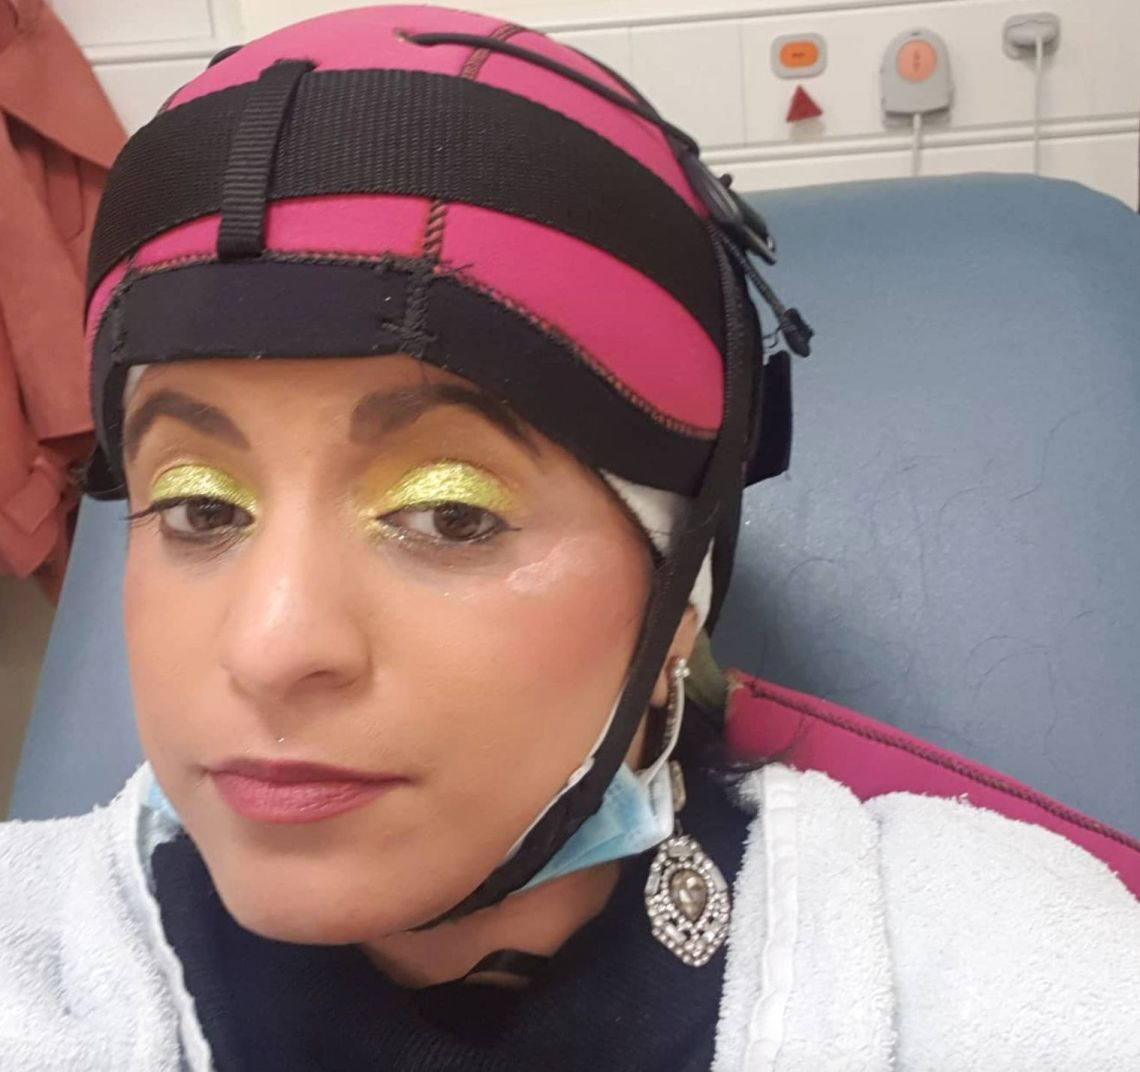 Sunita Thind in a hair cap to prevent further hair loss from her chemo.